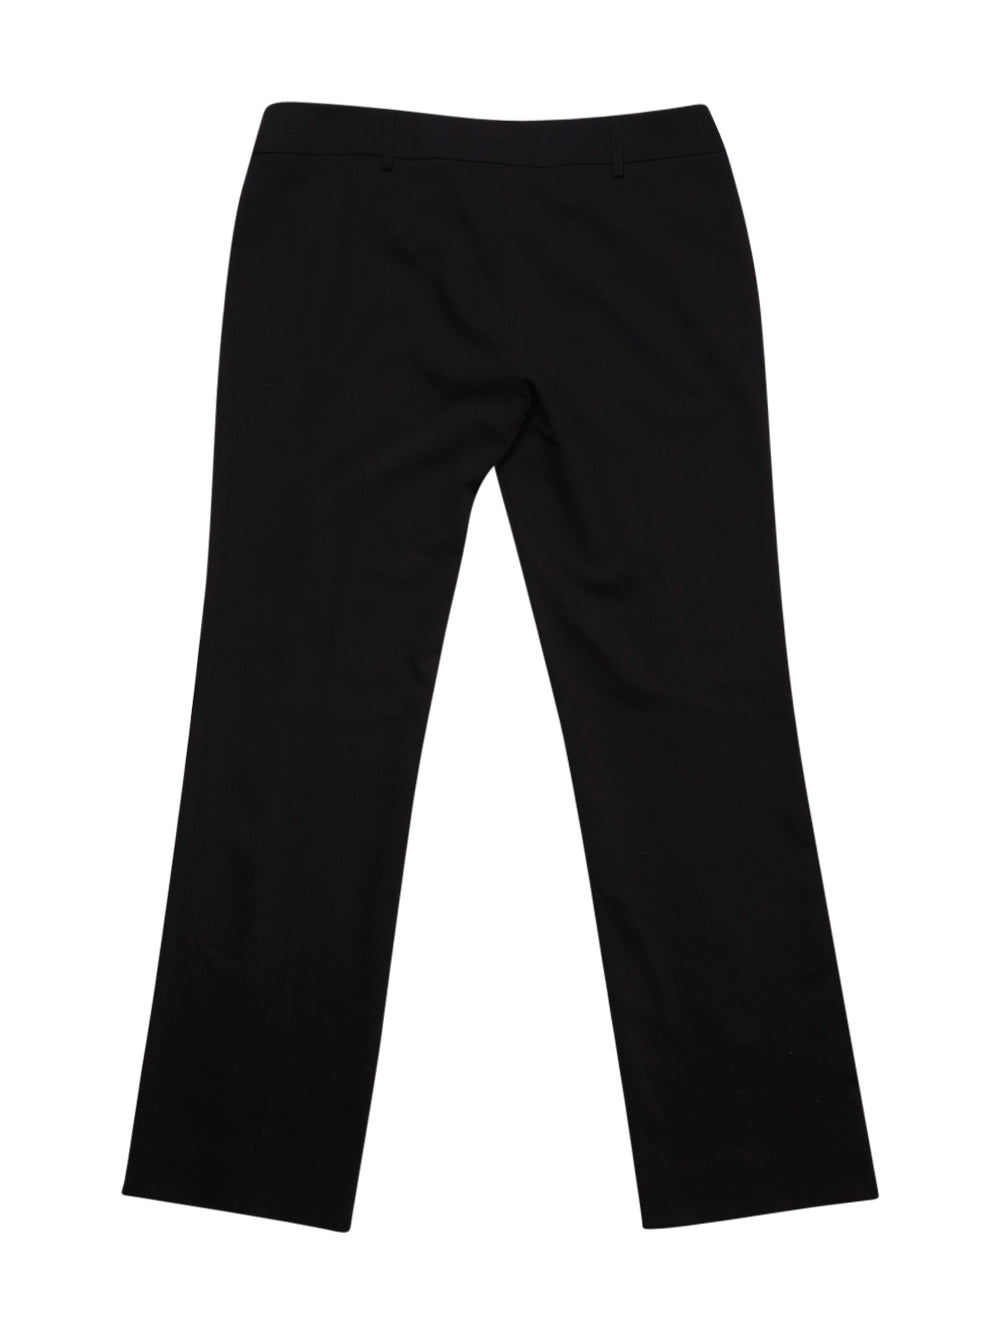 Back photo of Preloved Bisette Black Woman's trousers - size 16/XXL